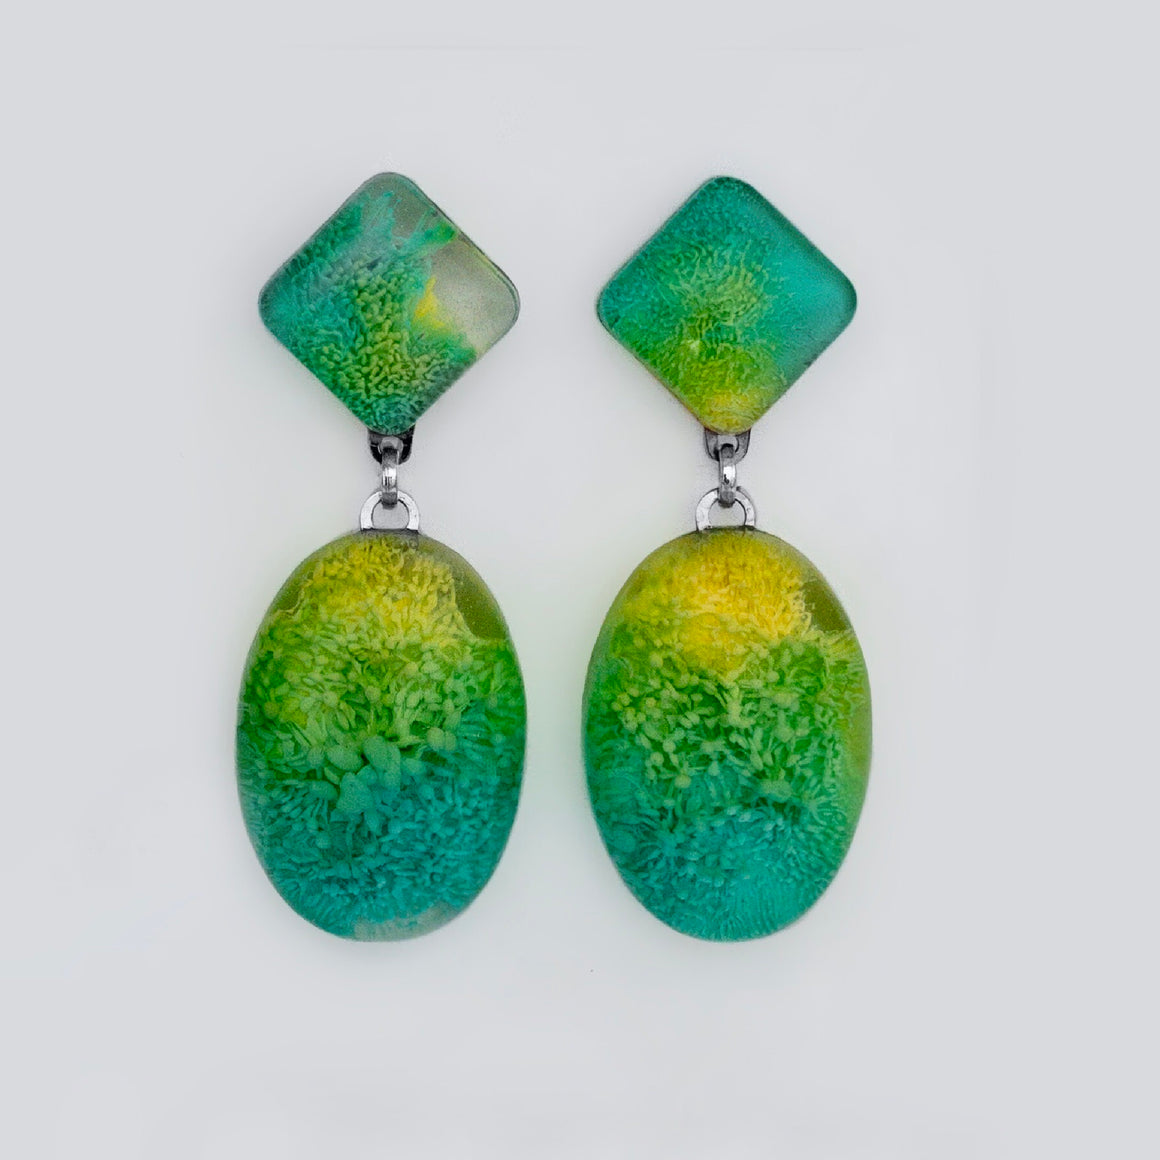 Resin + Ink Drop earrings